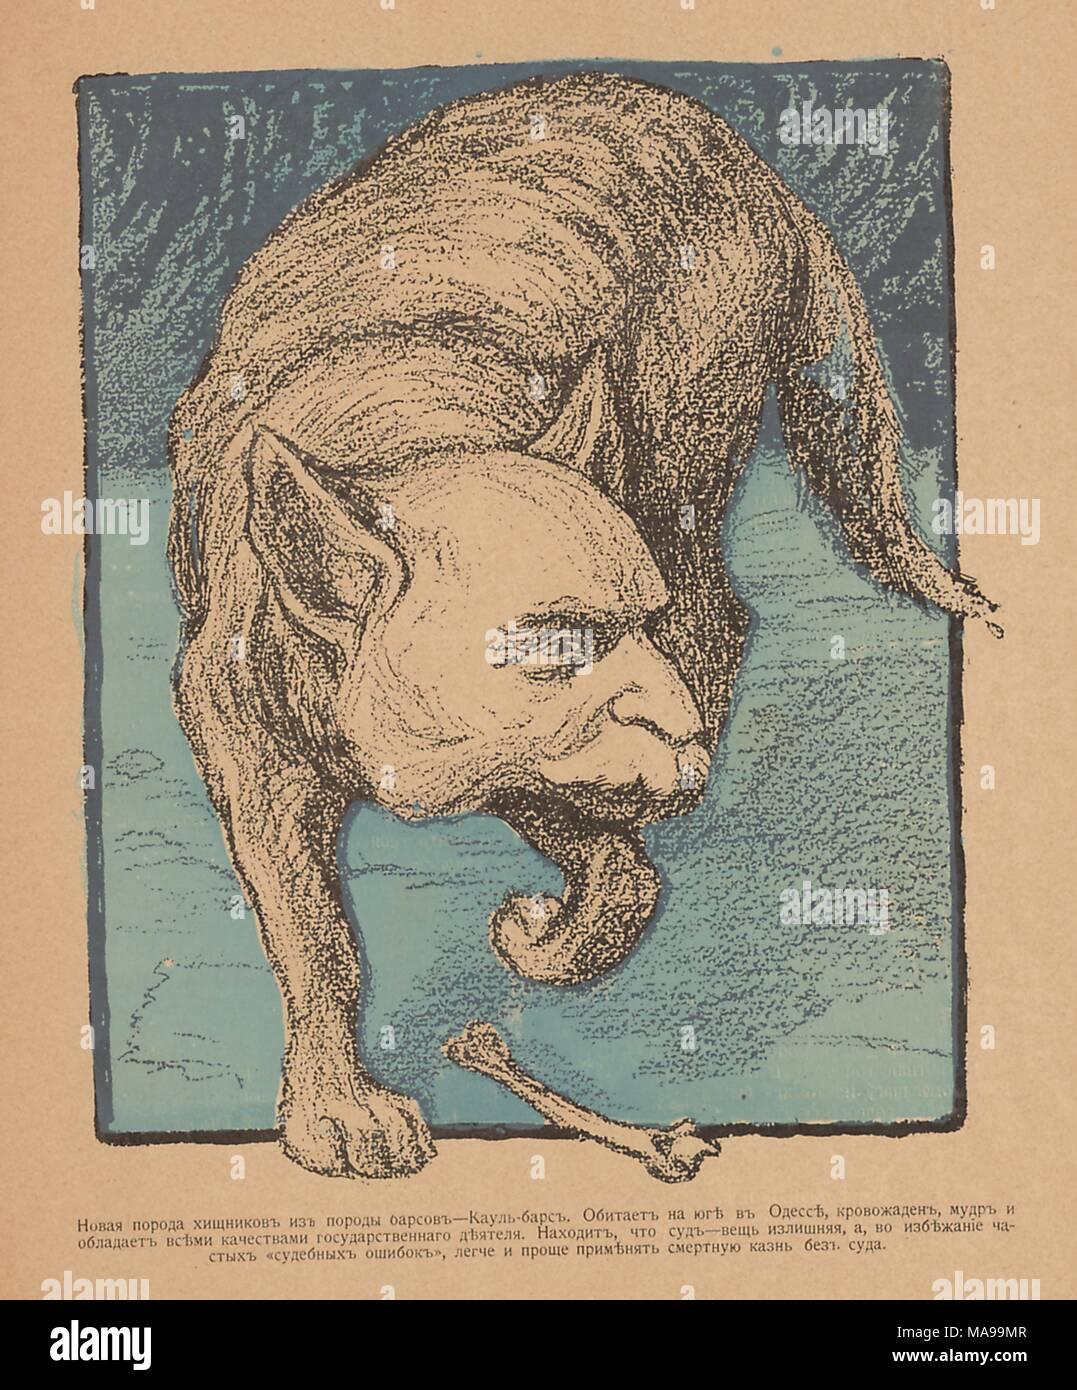 Cartoon from the Russian satirical journal Maski (Masks) depicting a dog with a human face of Alexander Kaulbars, standing above the bone, 1096. () Stock Photo